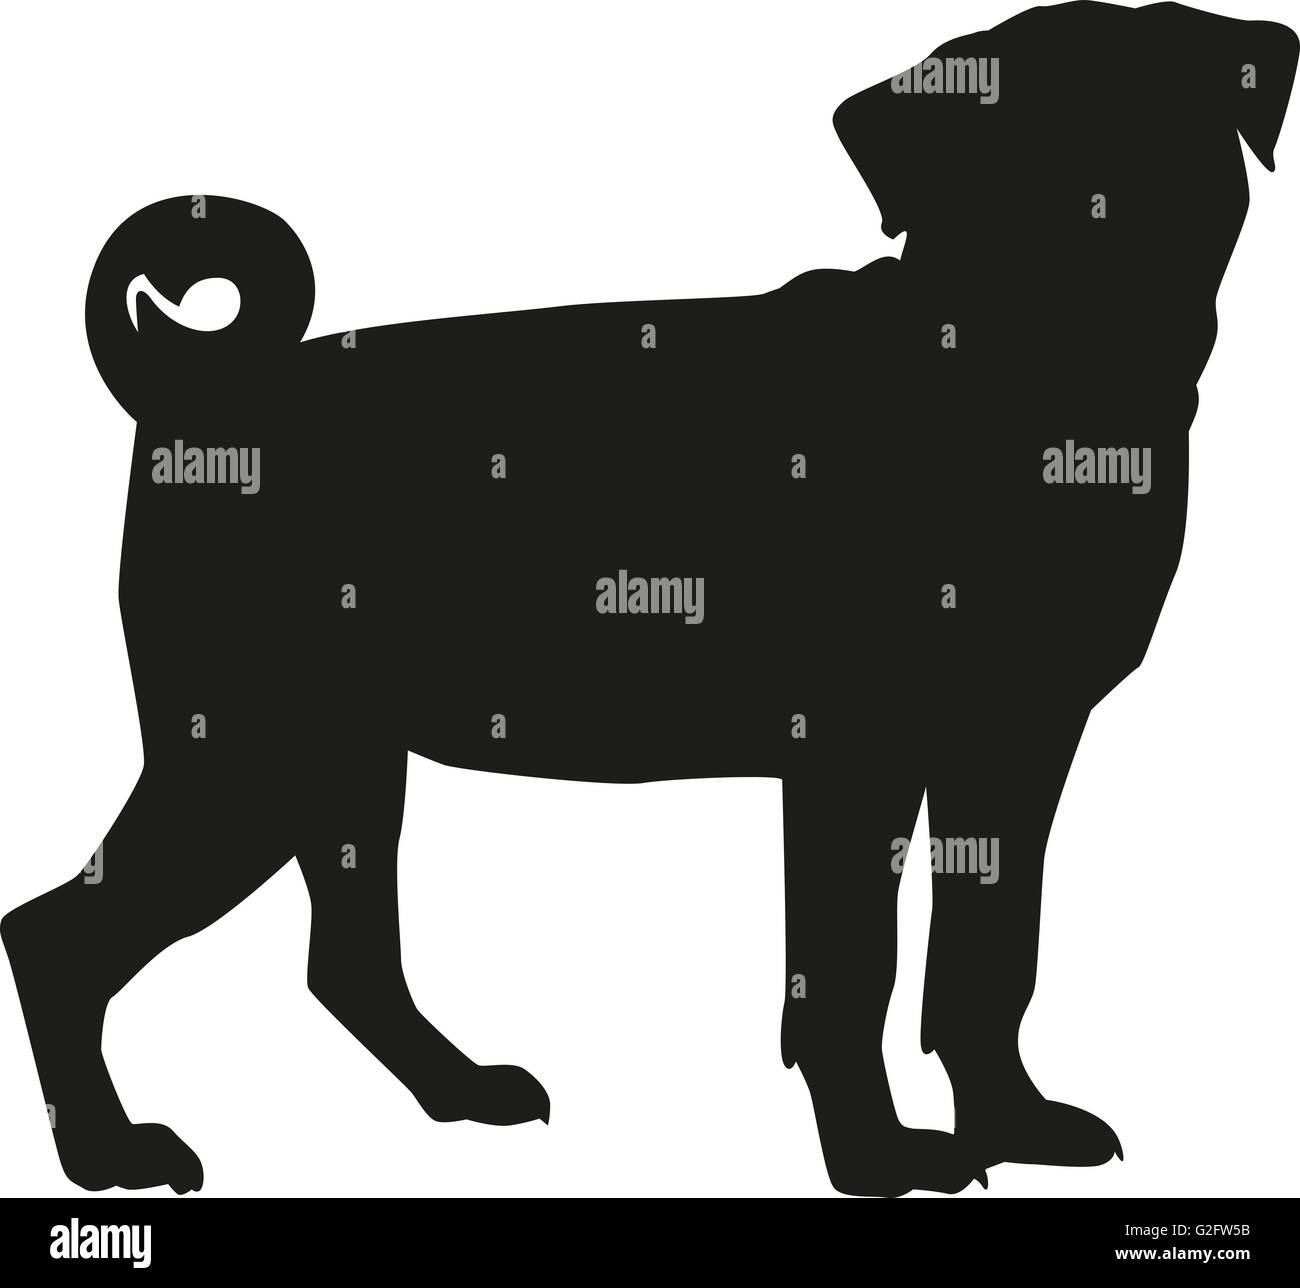 Pug dog - Stock Image